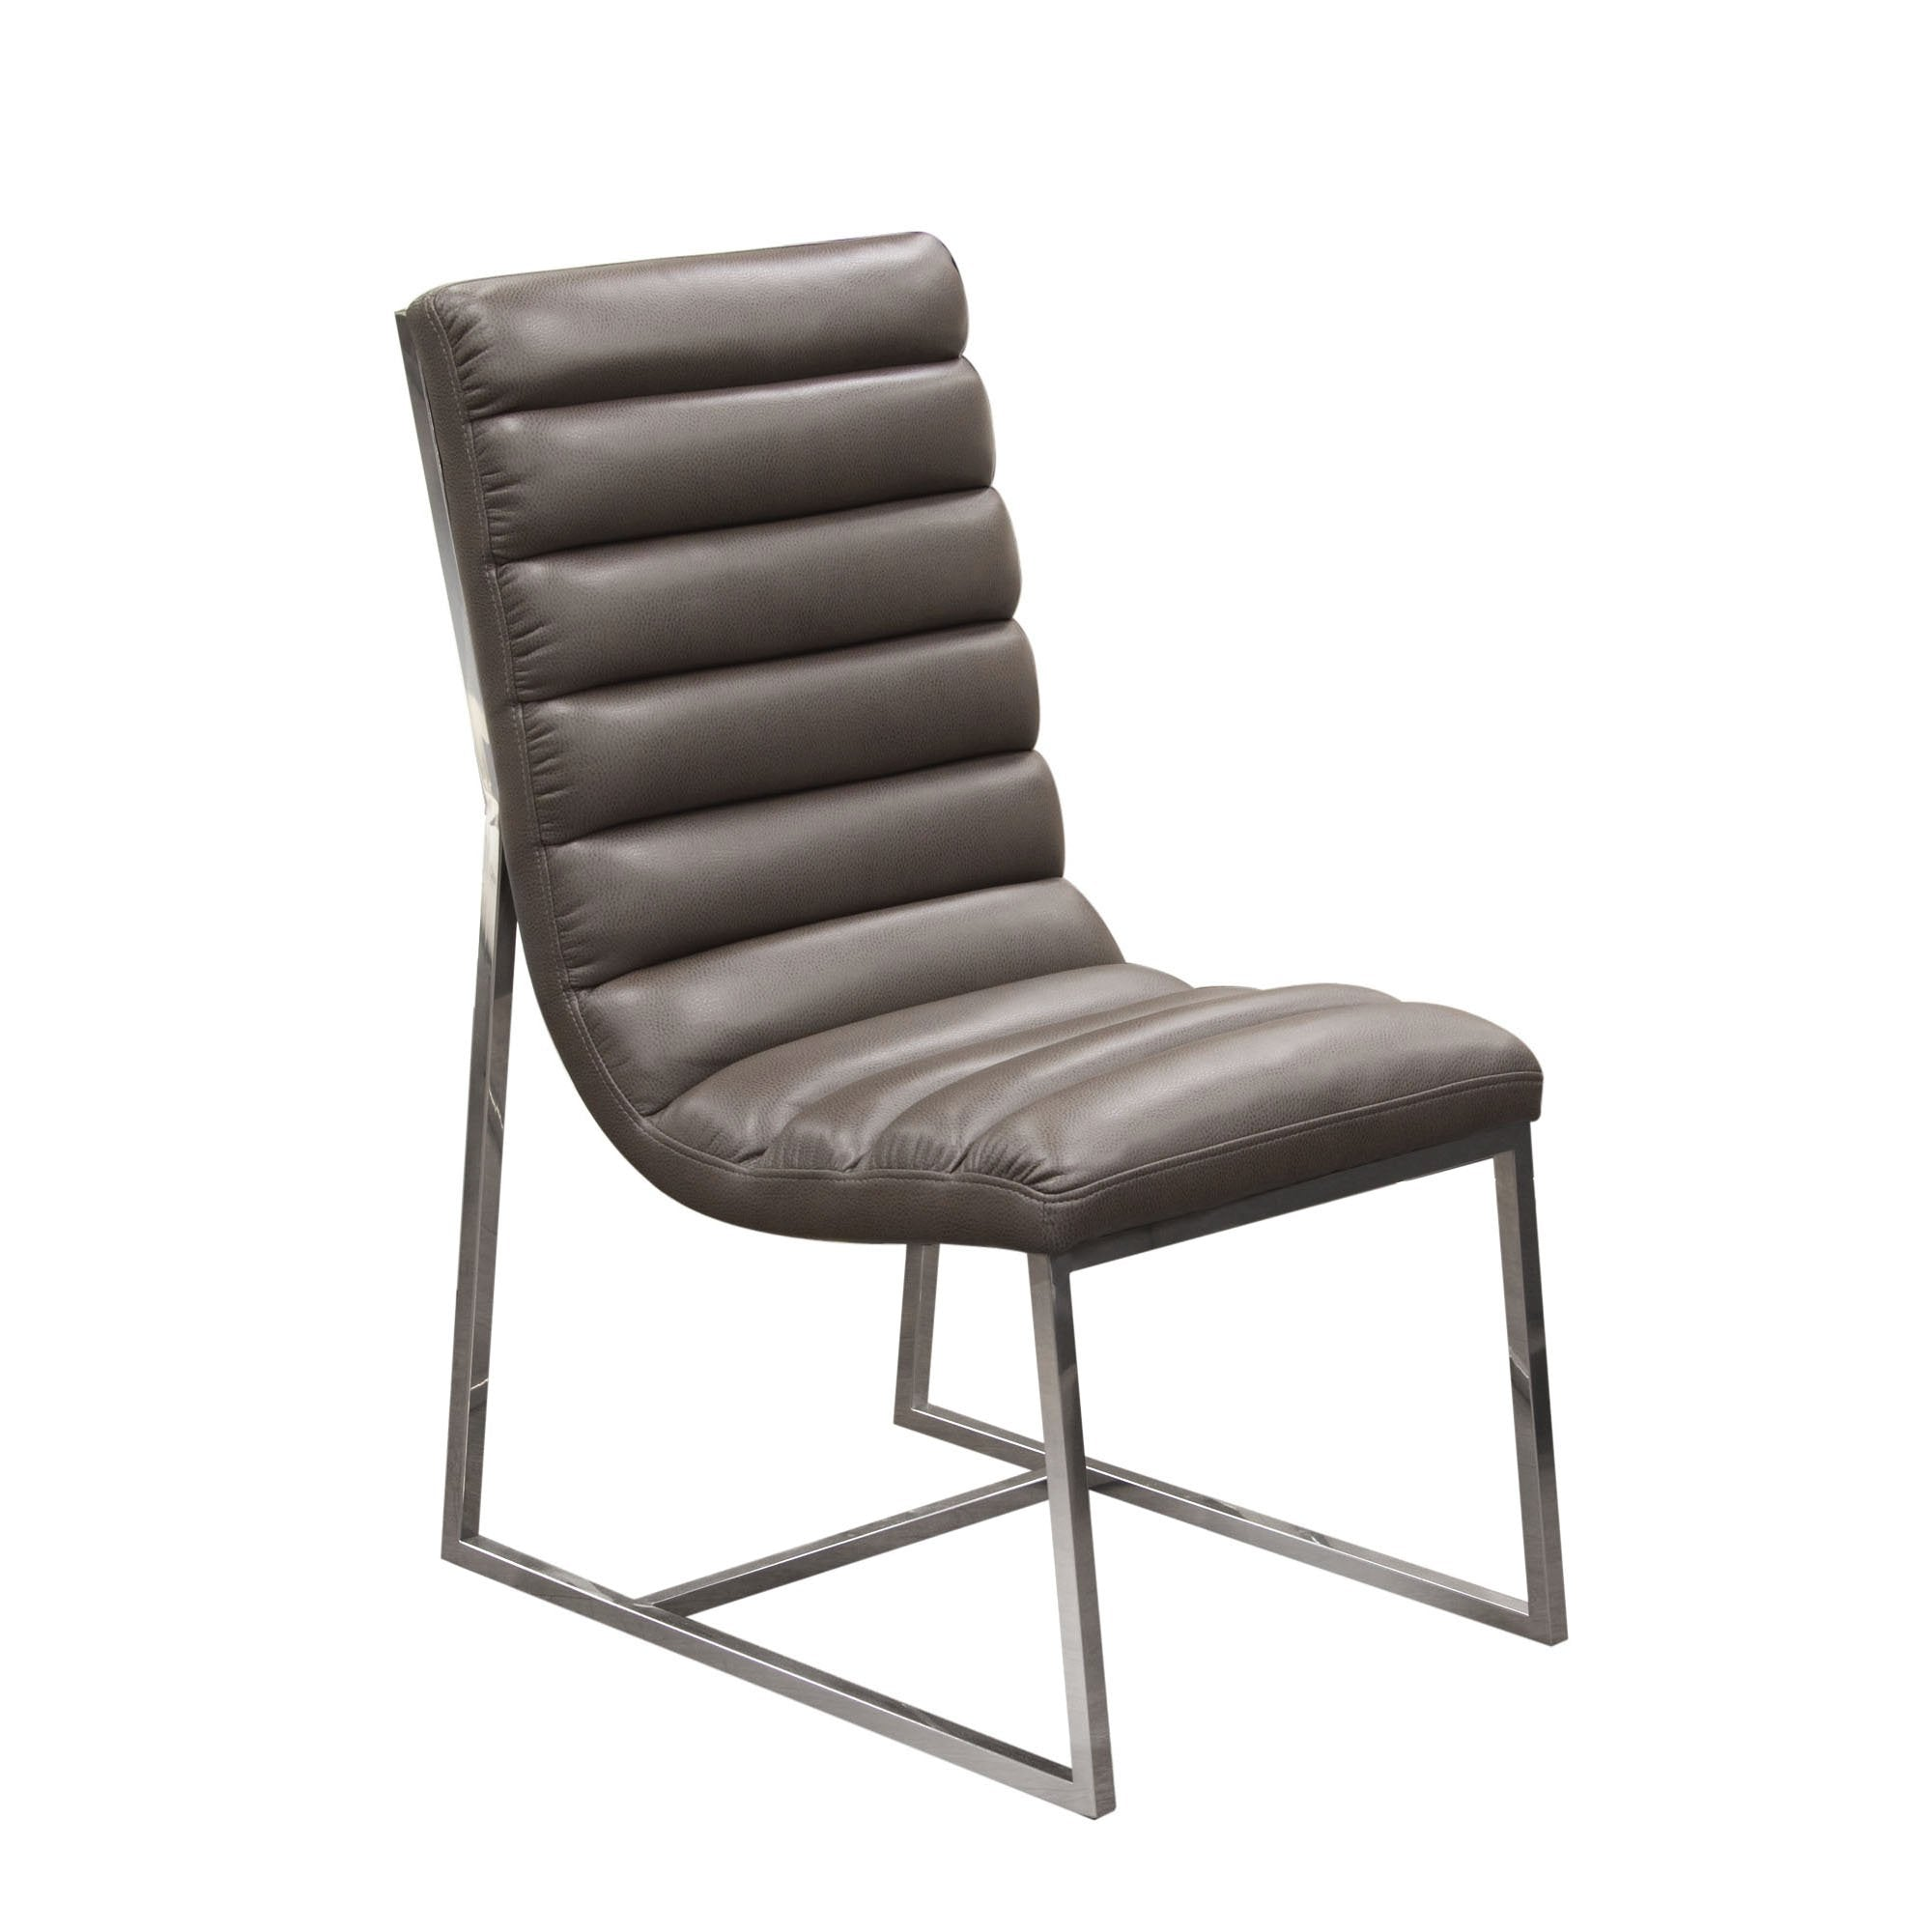 Bardot 2-Pack Dining Chair Grey